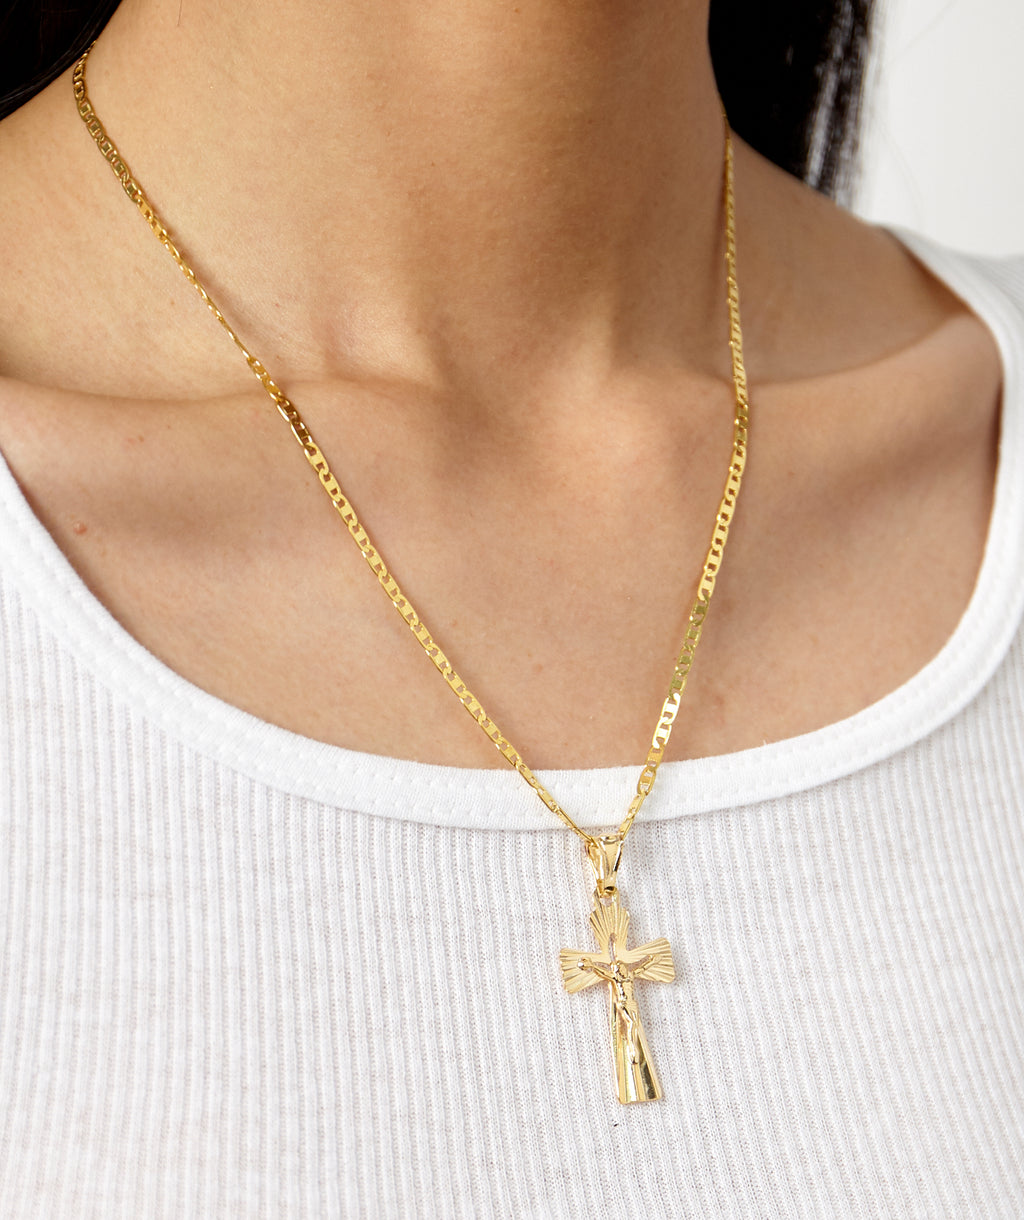 NOTRE DAME CROSS NECKLACE